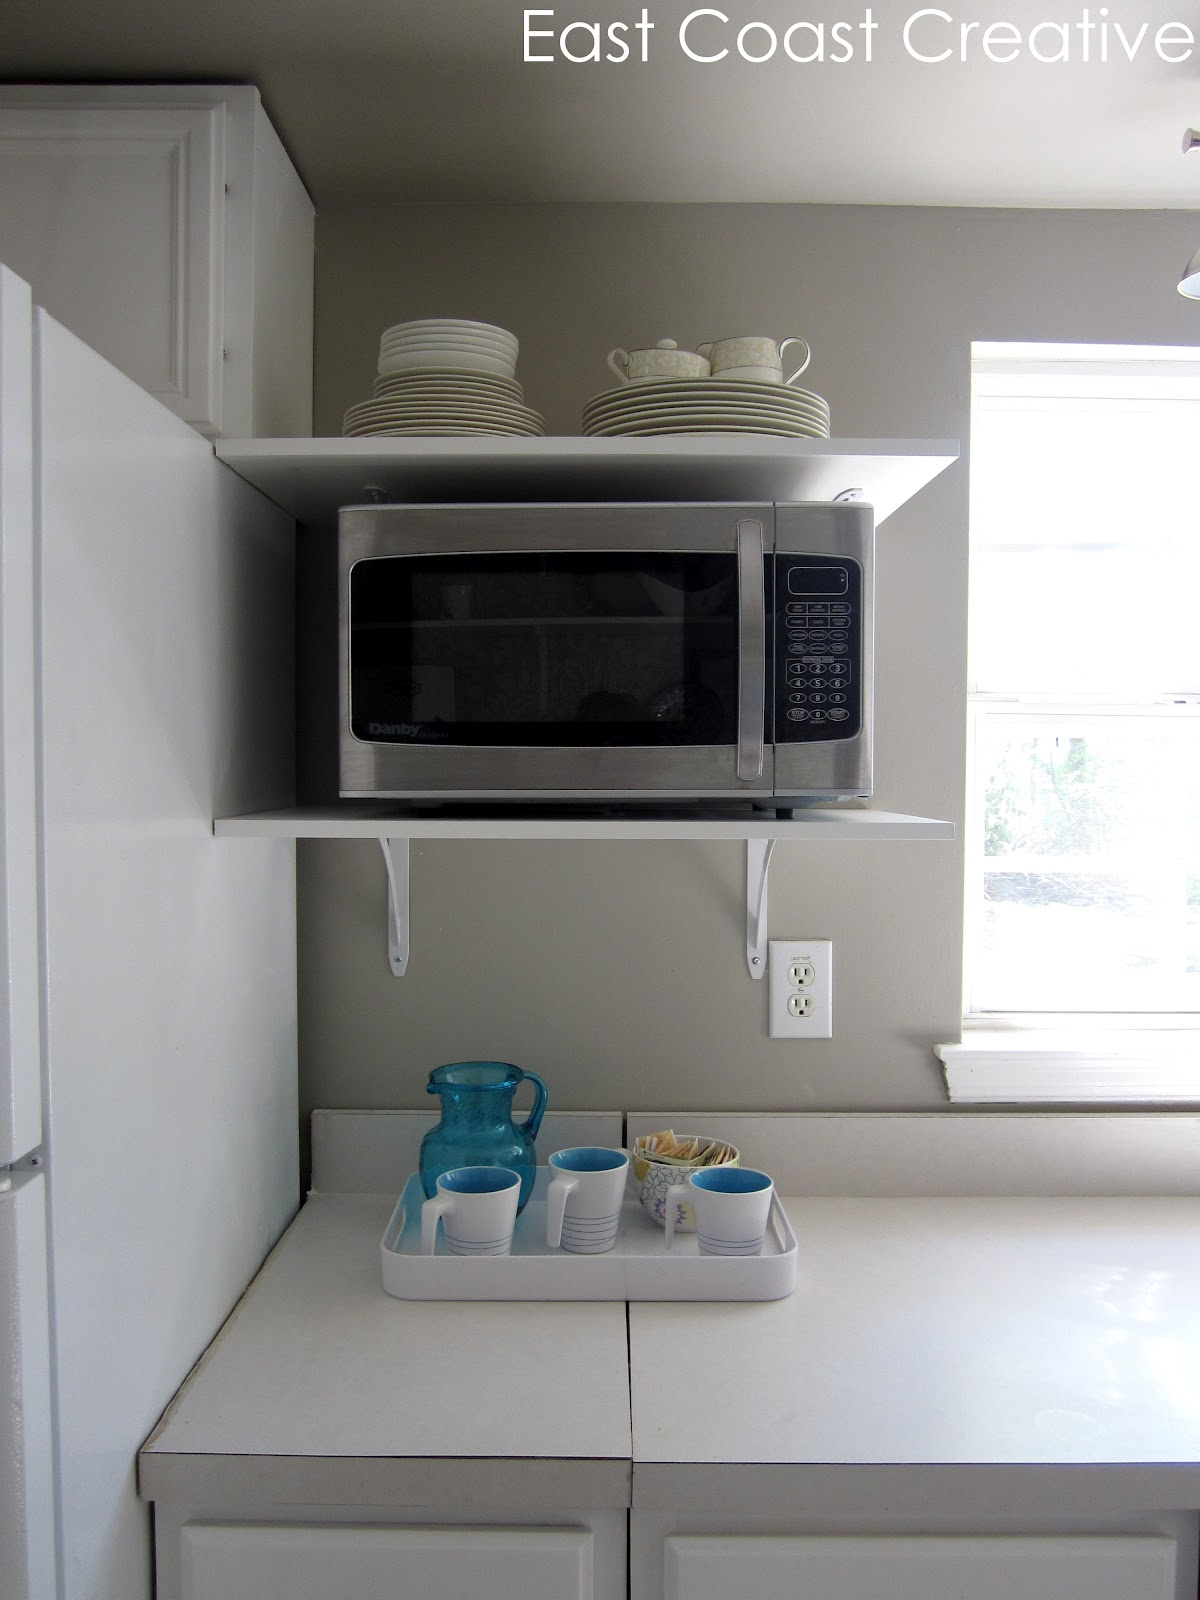 Kitchen shelves for microwave - We Finally Cut And Hung Two More Open Shelves To House Our Microwave I Gotta Tell You I So Enjoy The Extra Space On The Counters Now That Thing Is Off Of